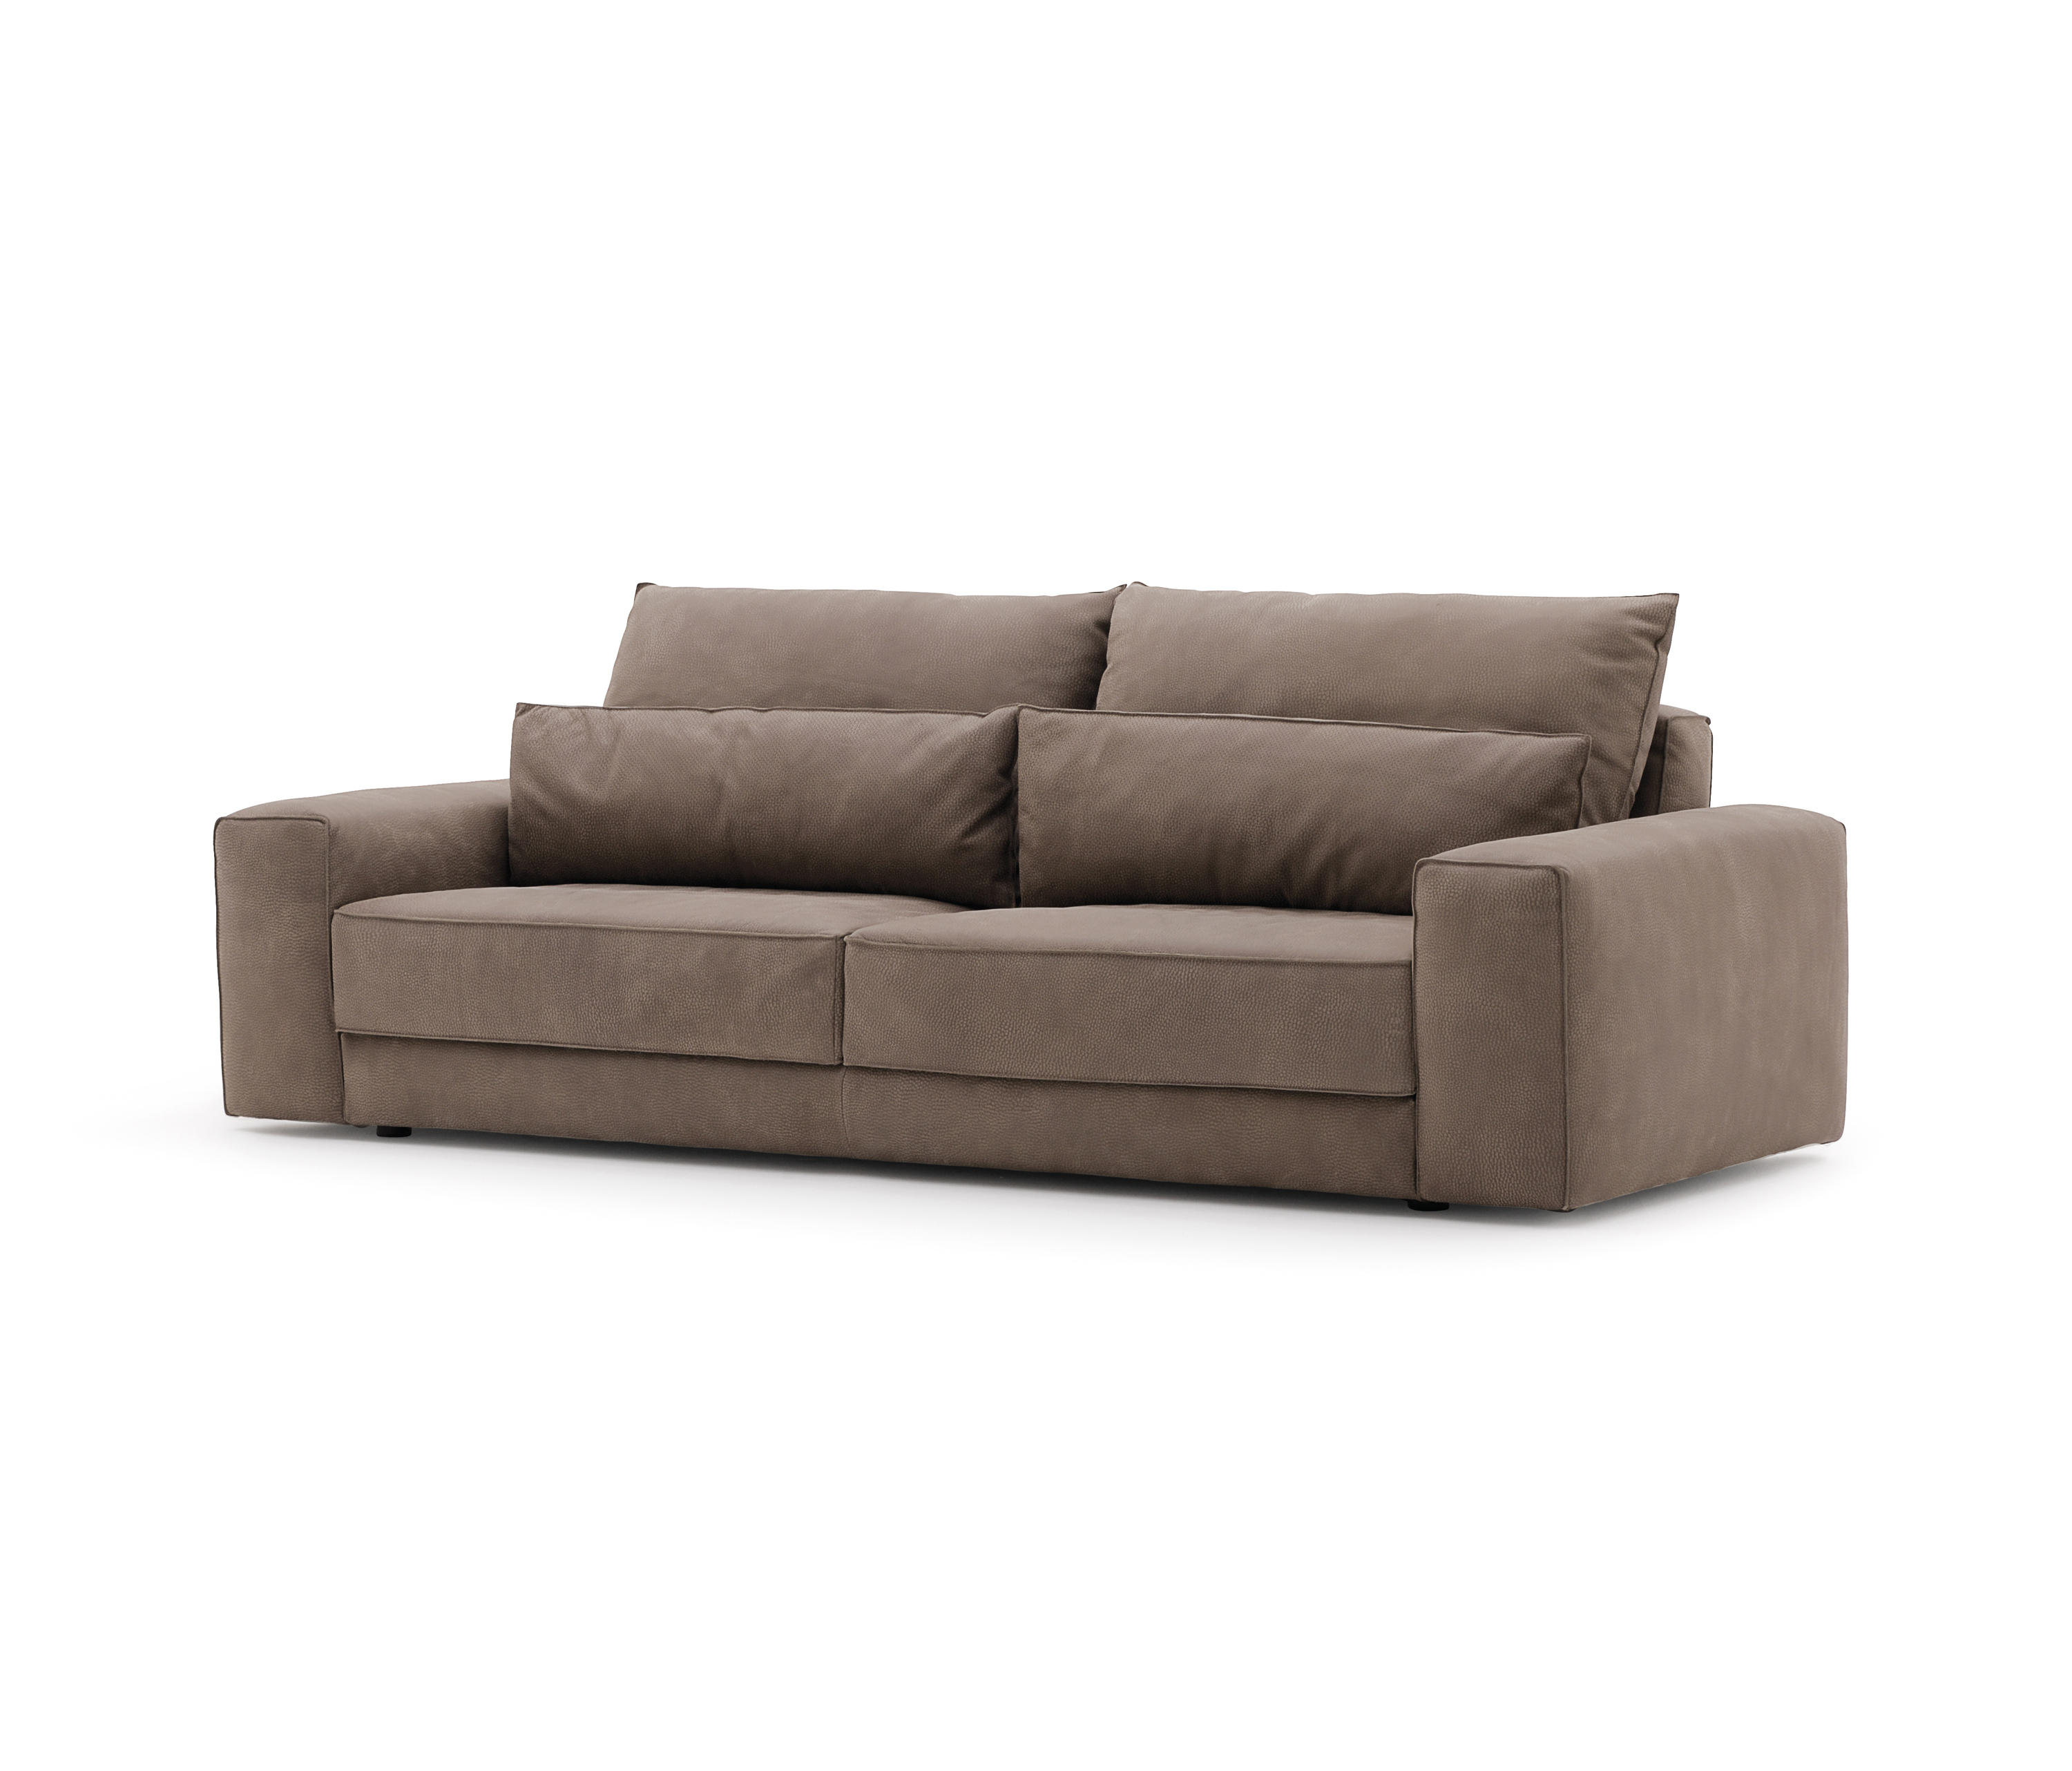 GAME Sofas from Alberta Pacific Furniture